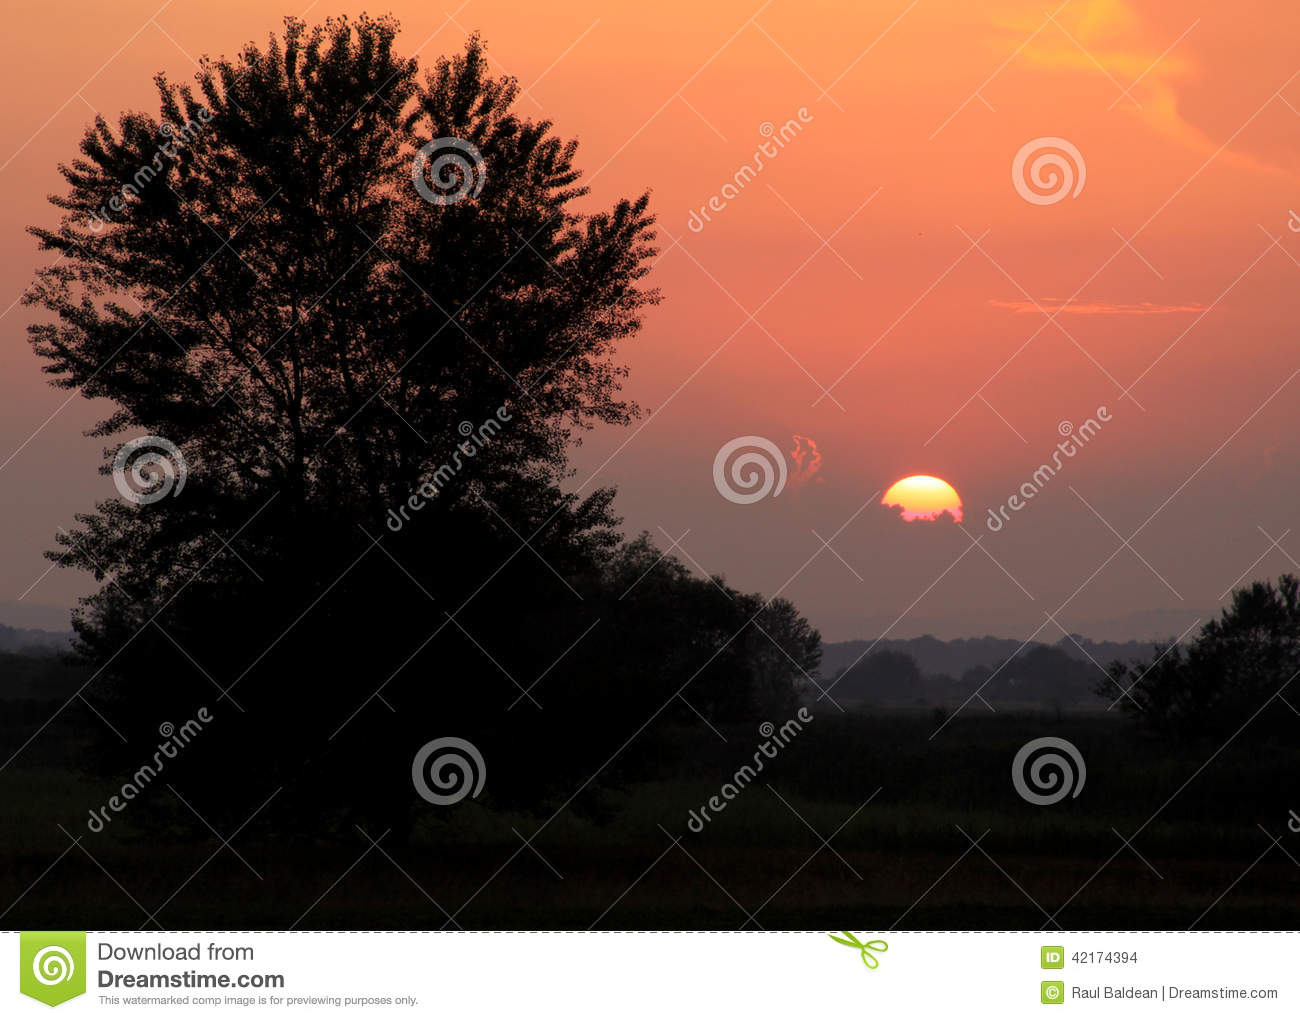 Sun at sunset with tree